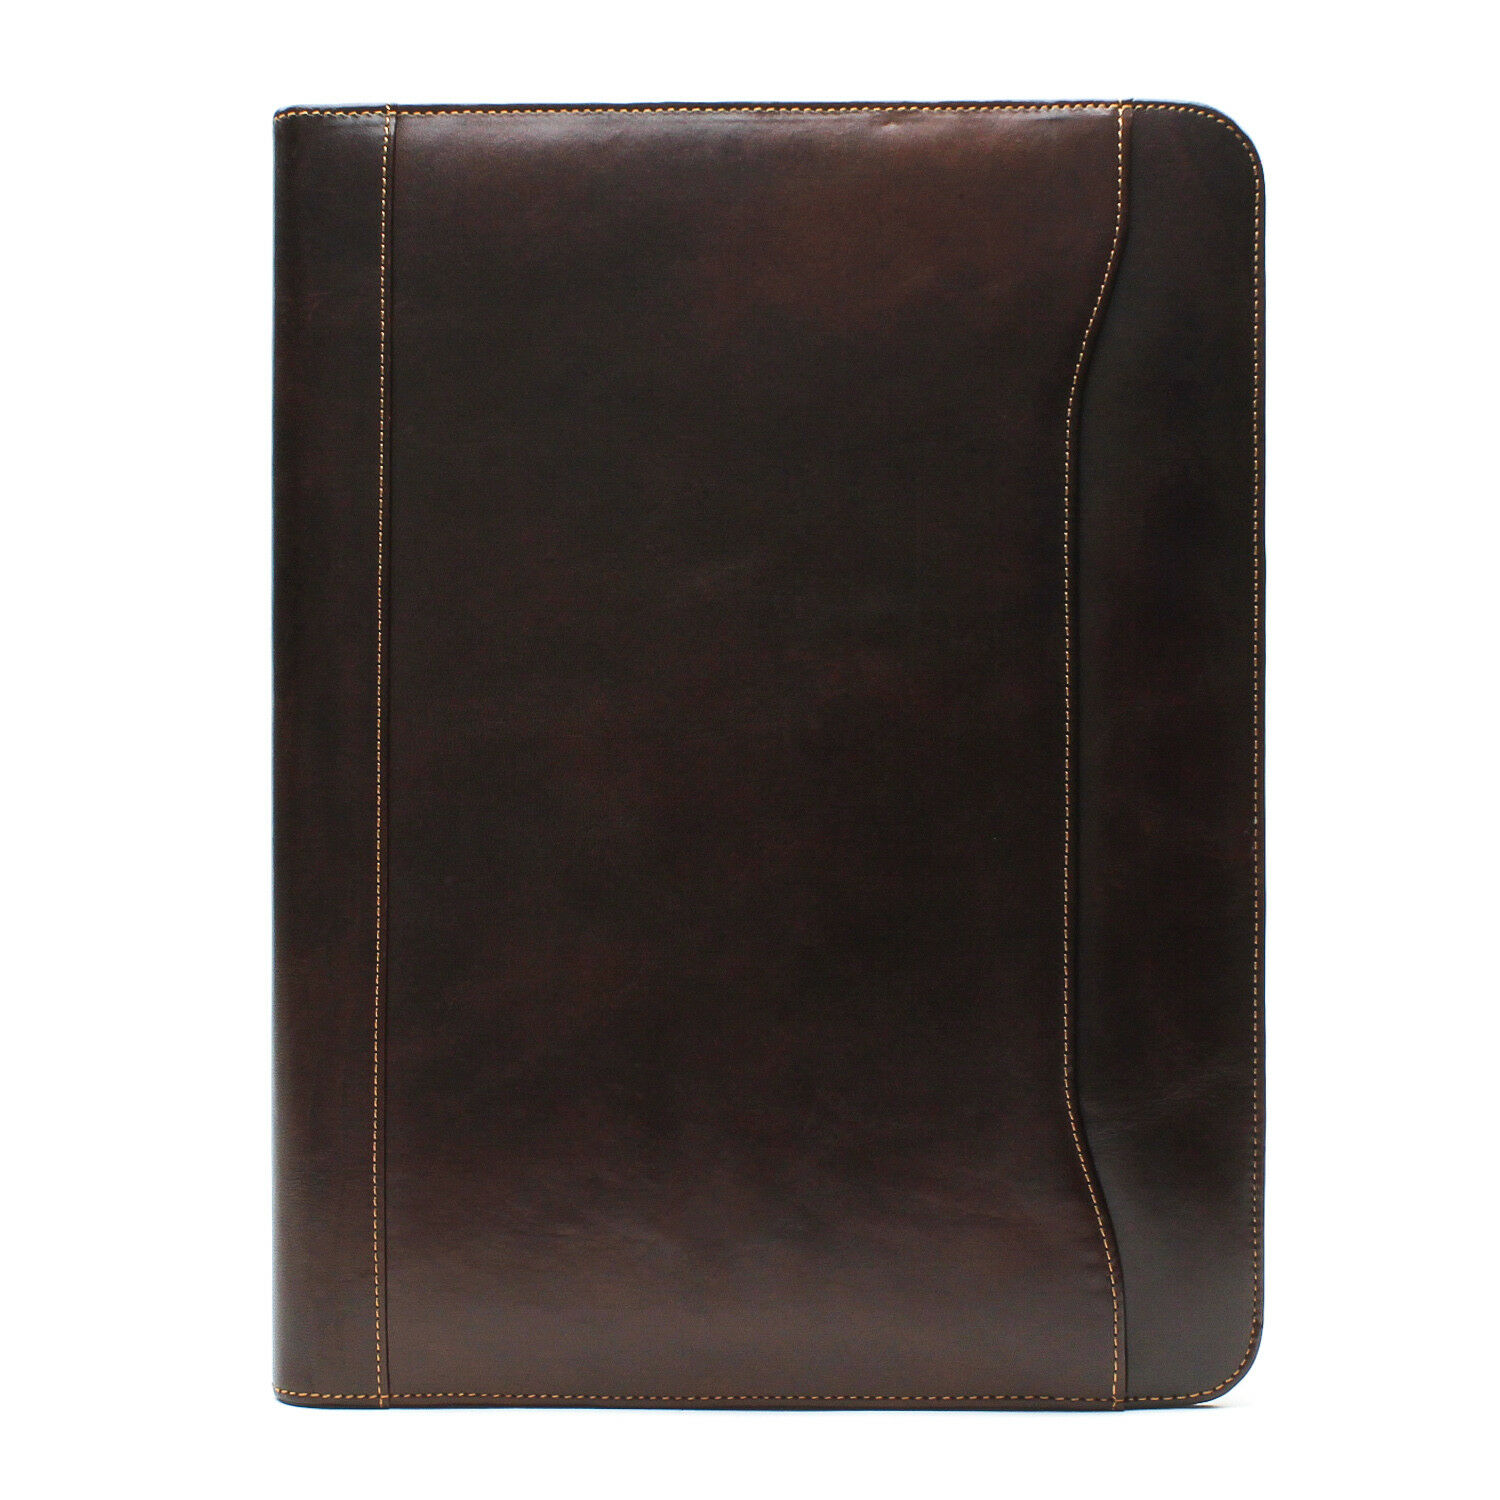 Tony Perotti Ultimo Padfolio Italian Leather Writing Portfol